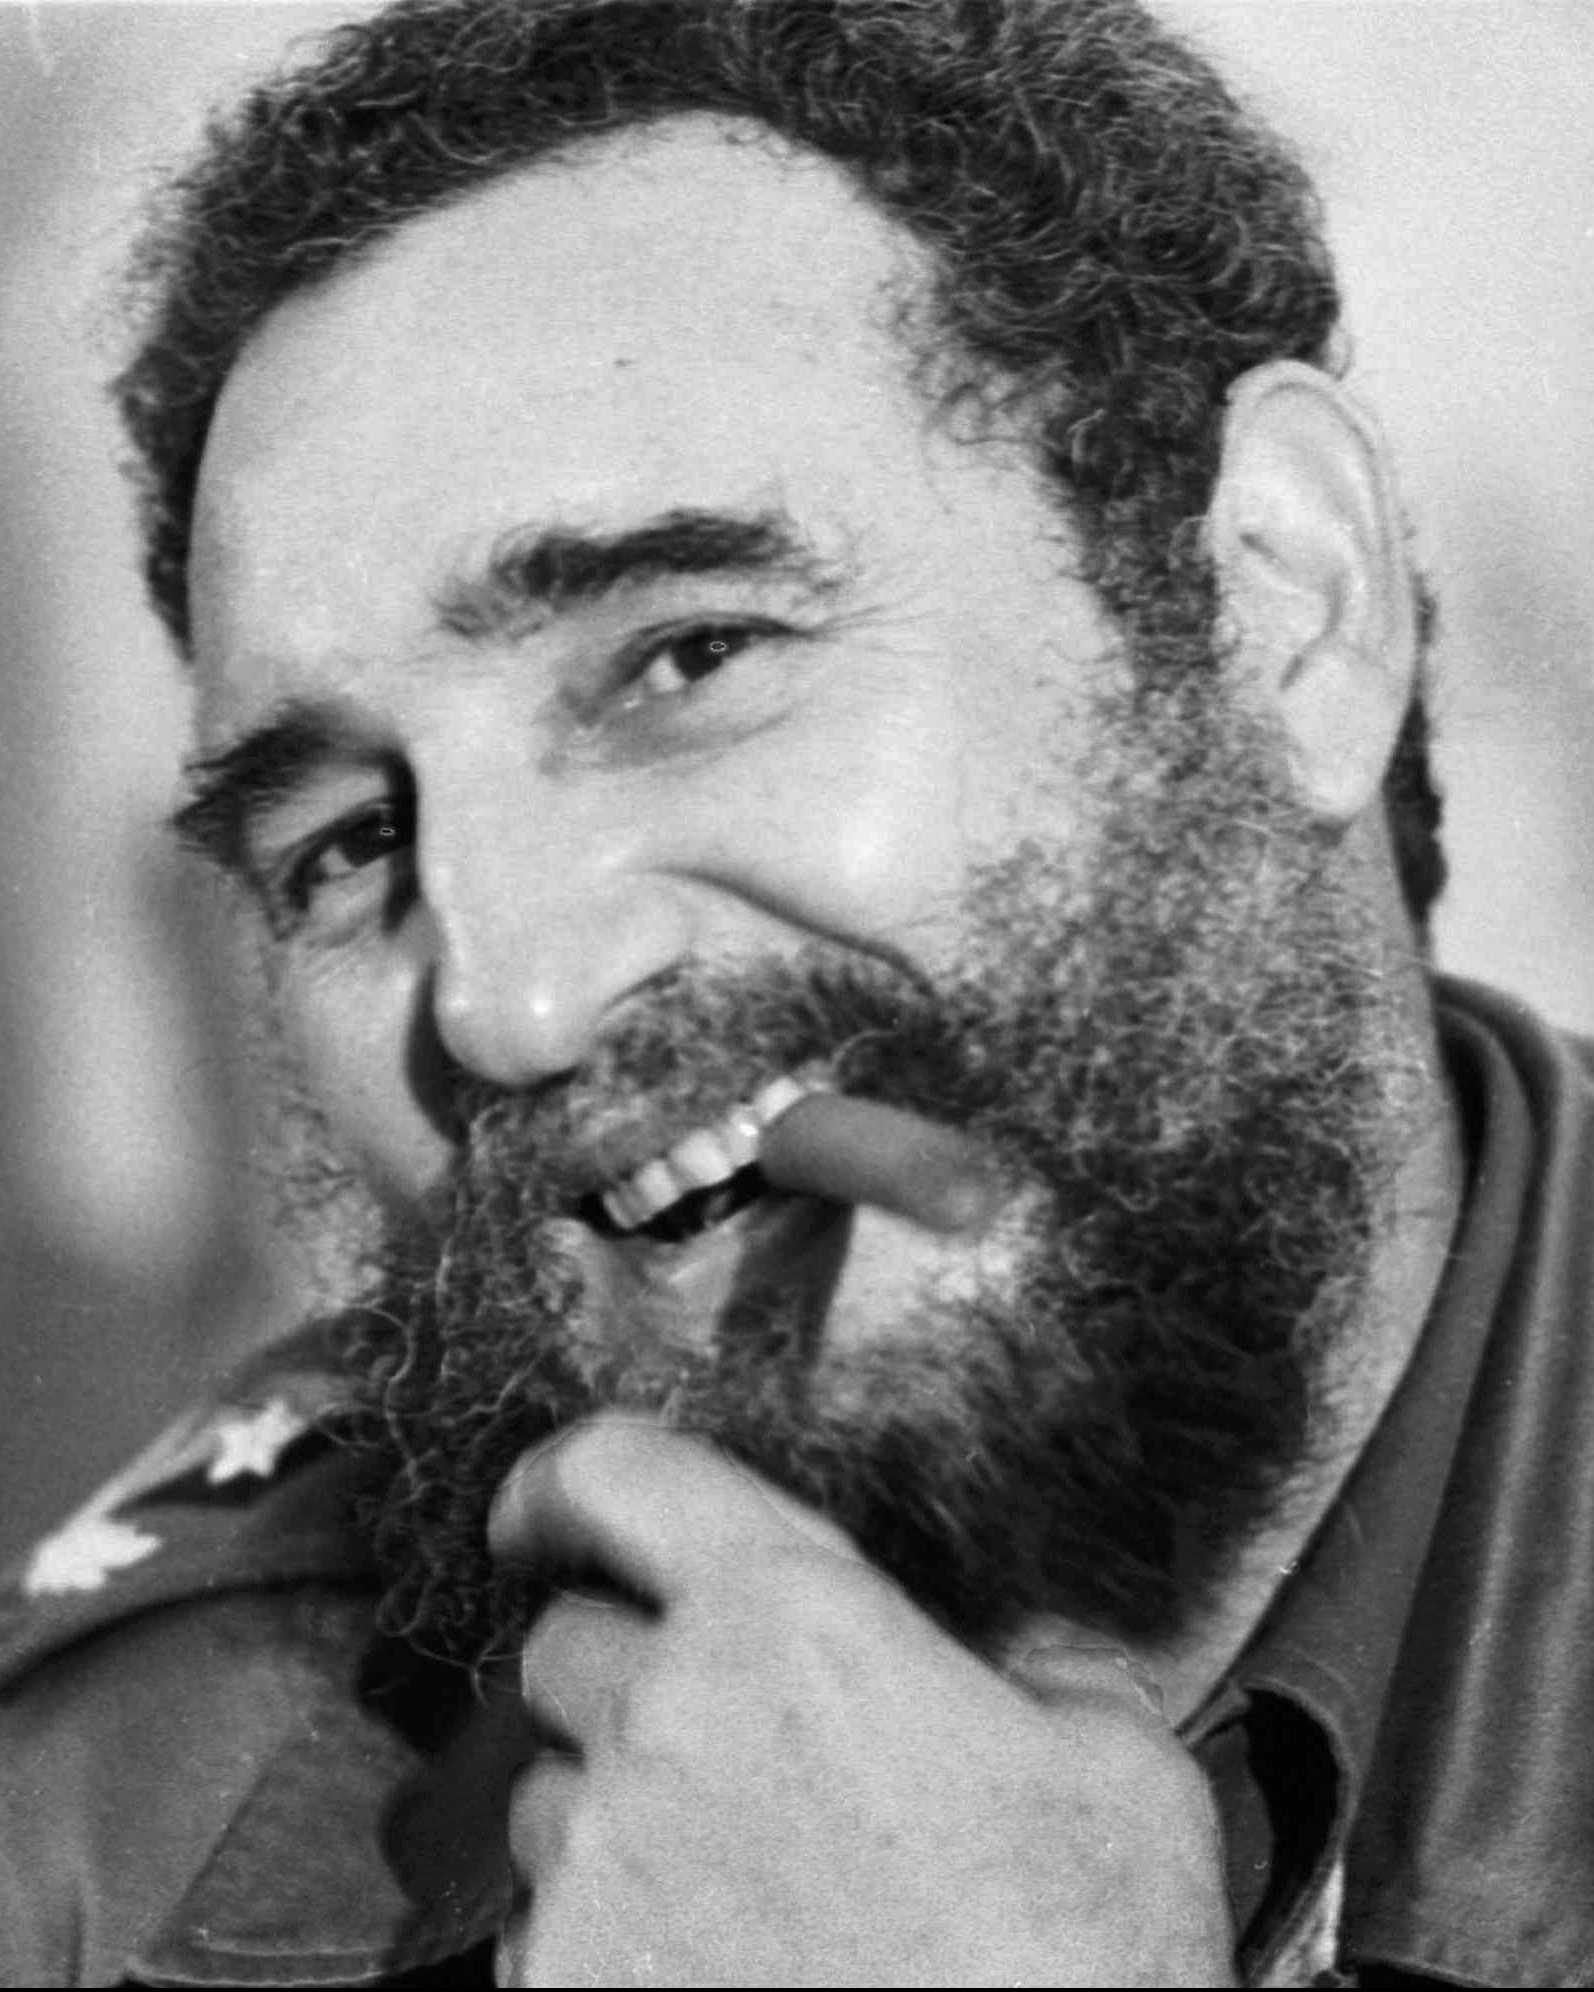 Fidel Castro smoking a cigar